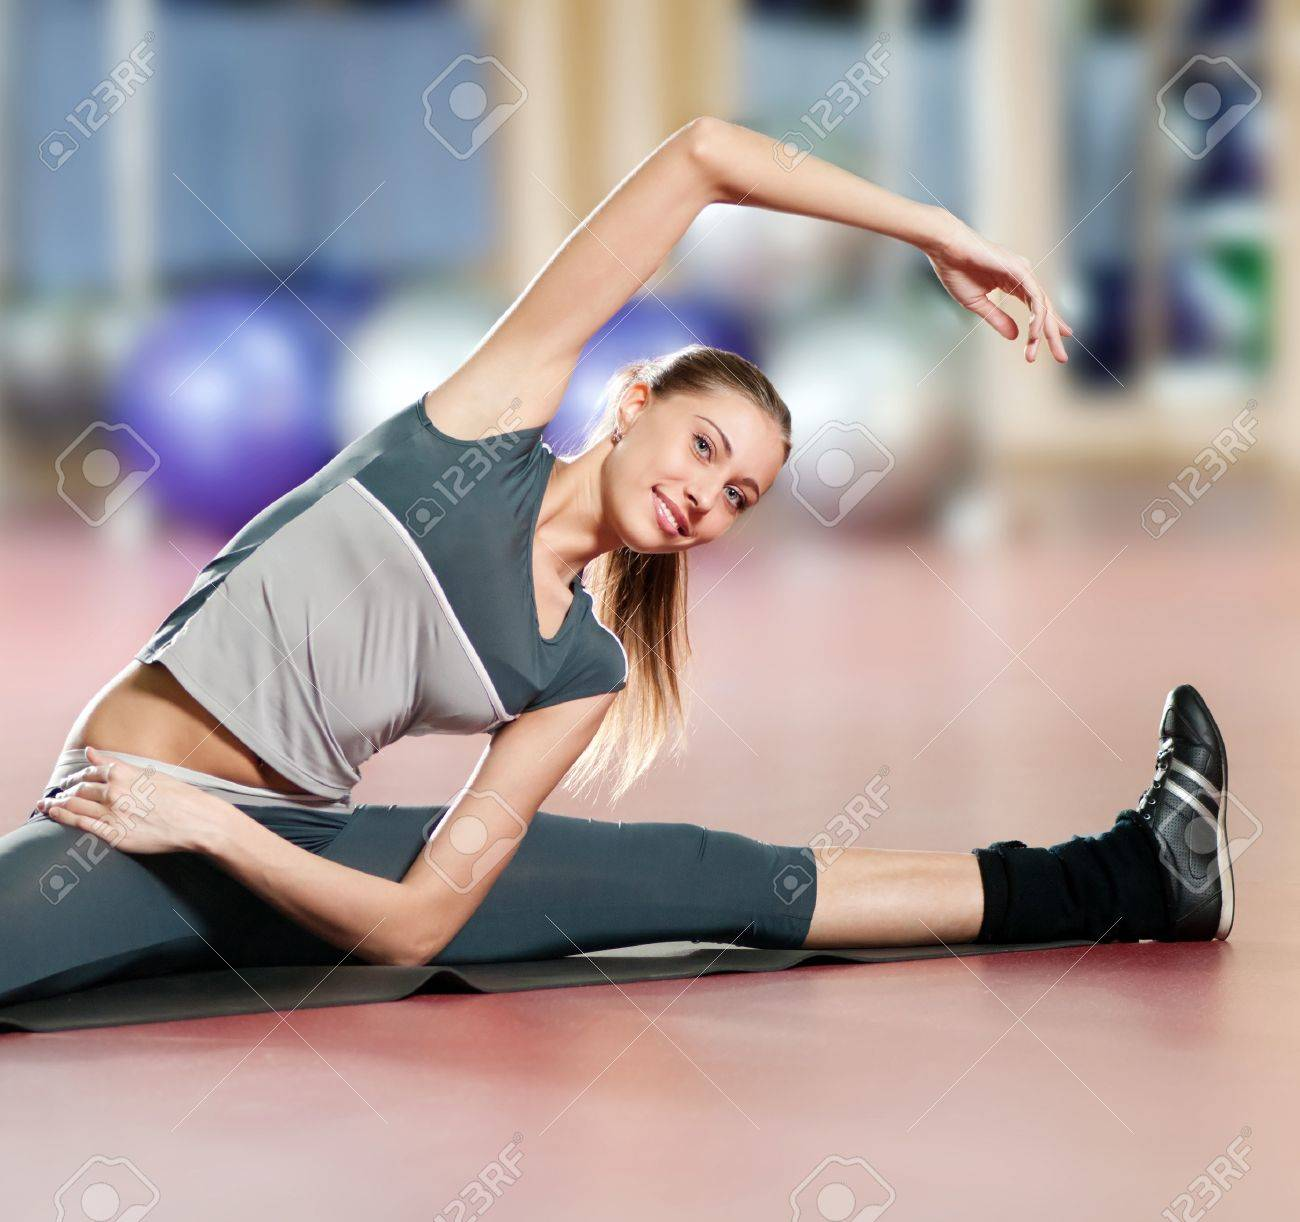 Beautiful sport woman doing stretching fitness exercise at sport gym. Yoga Stock Photo - 9805873